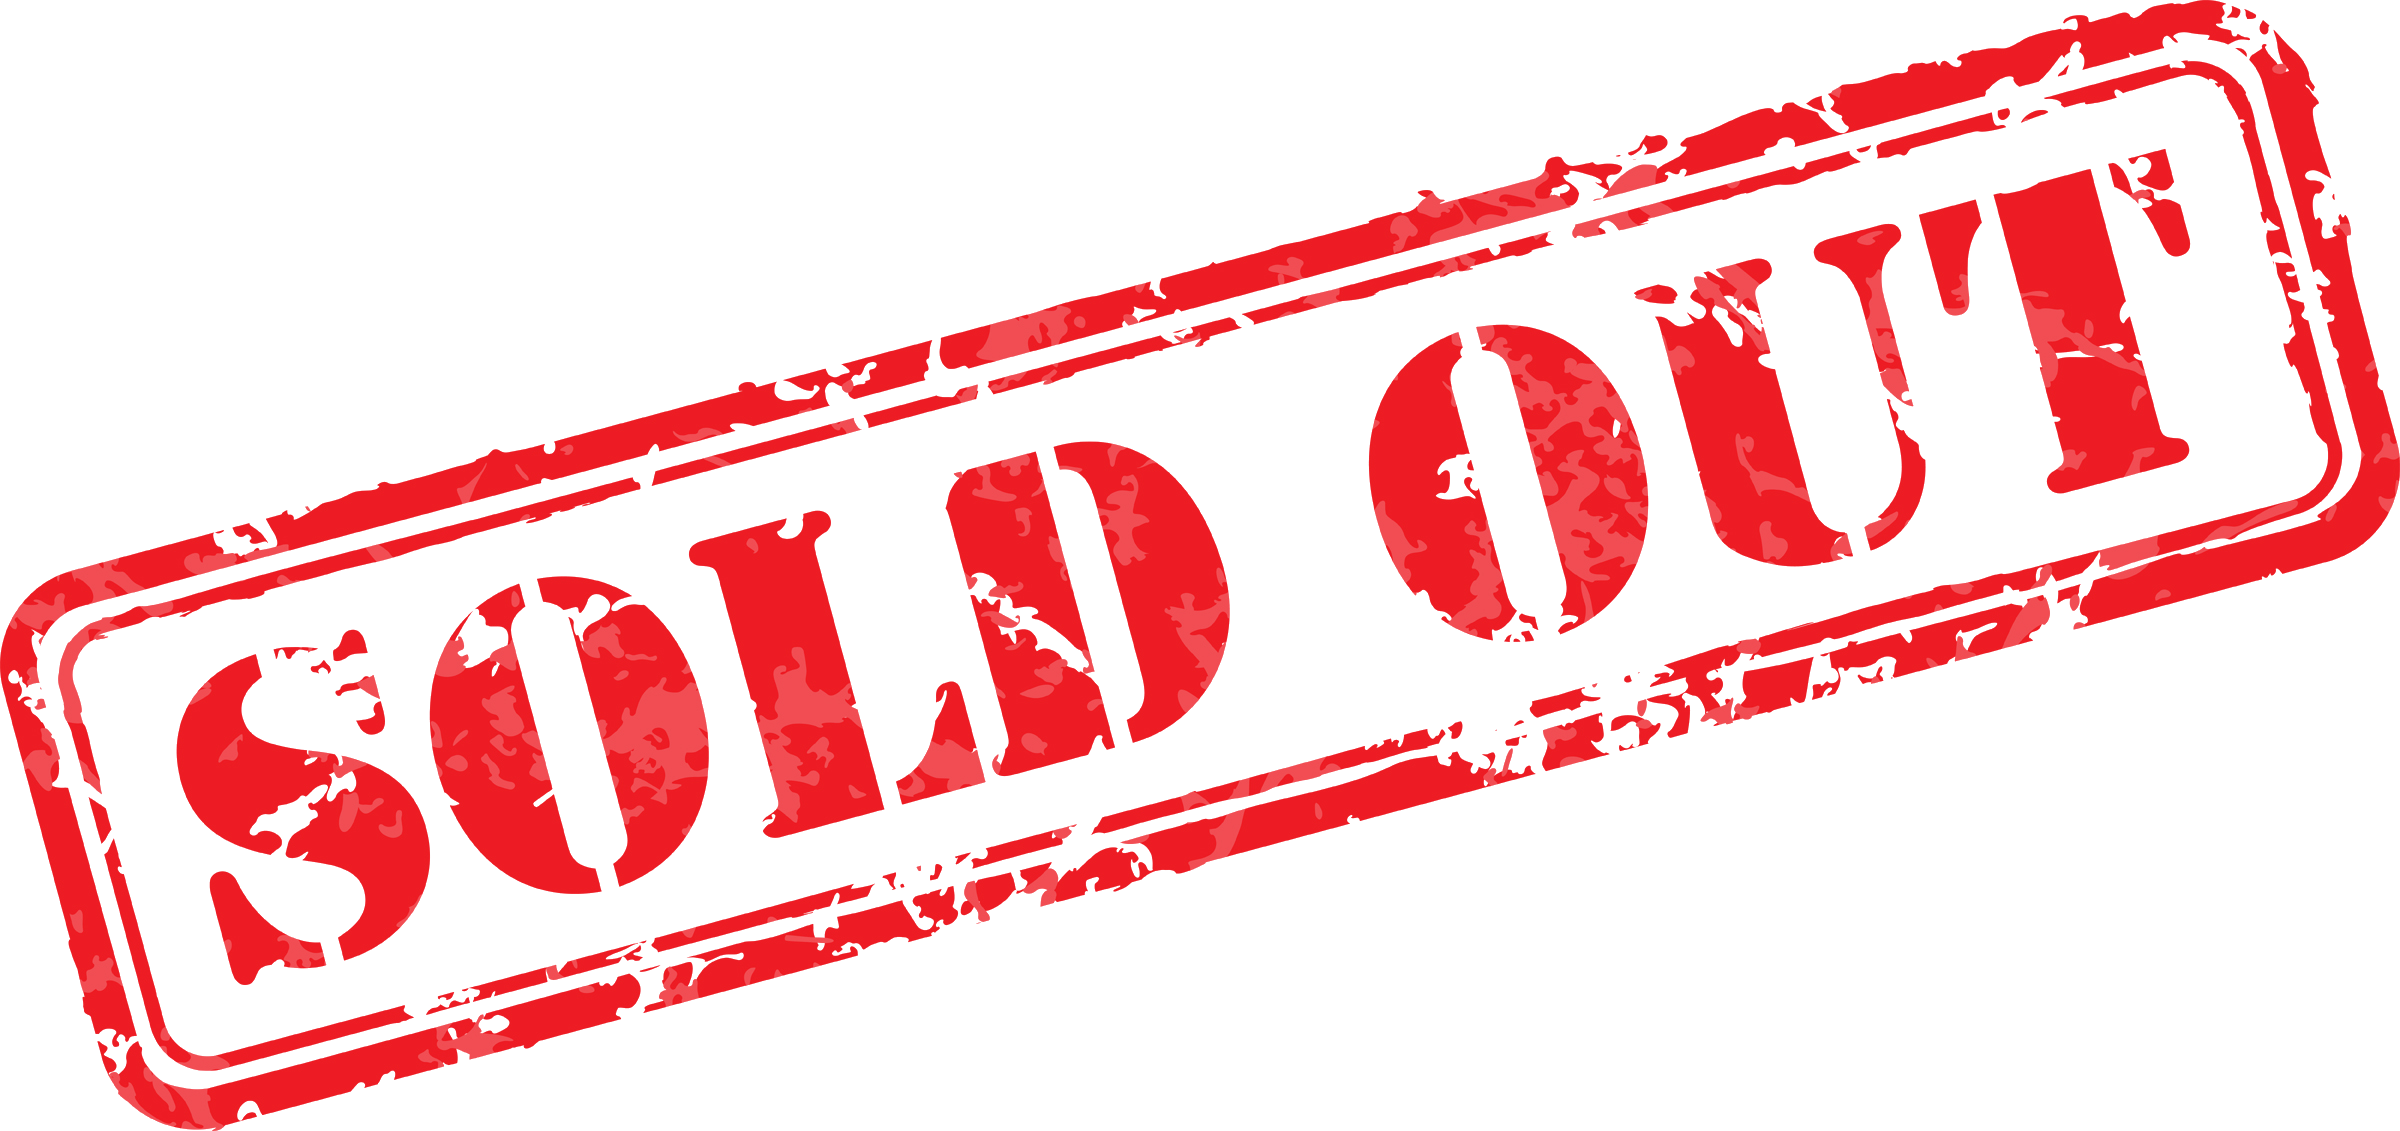 Sold out transparent png. Ticket the speech stuttering